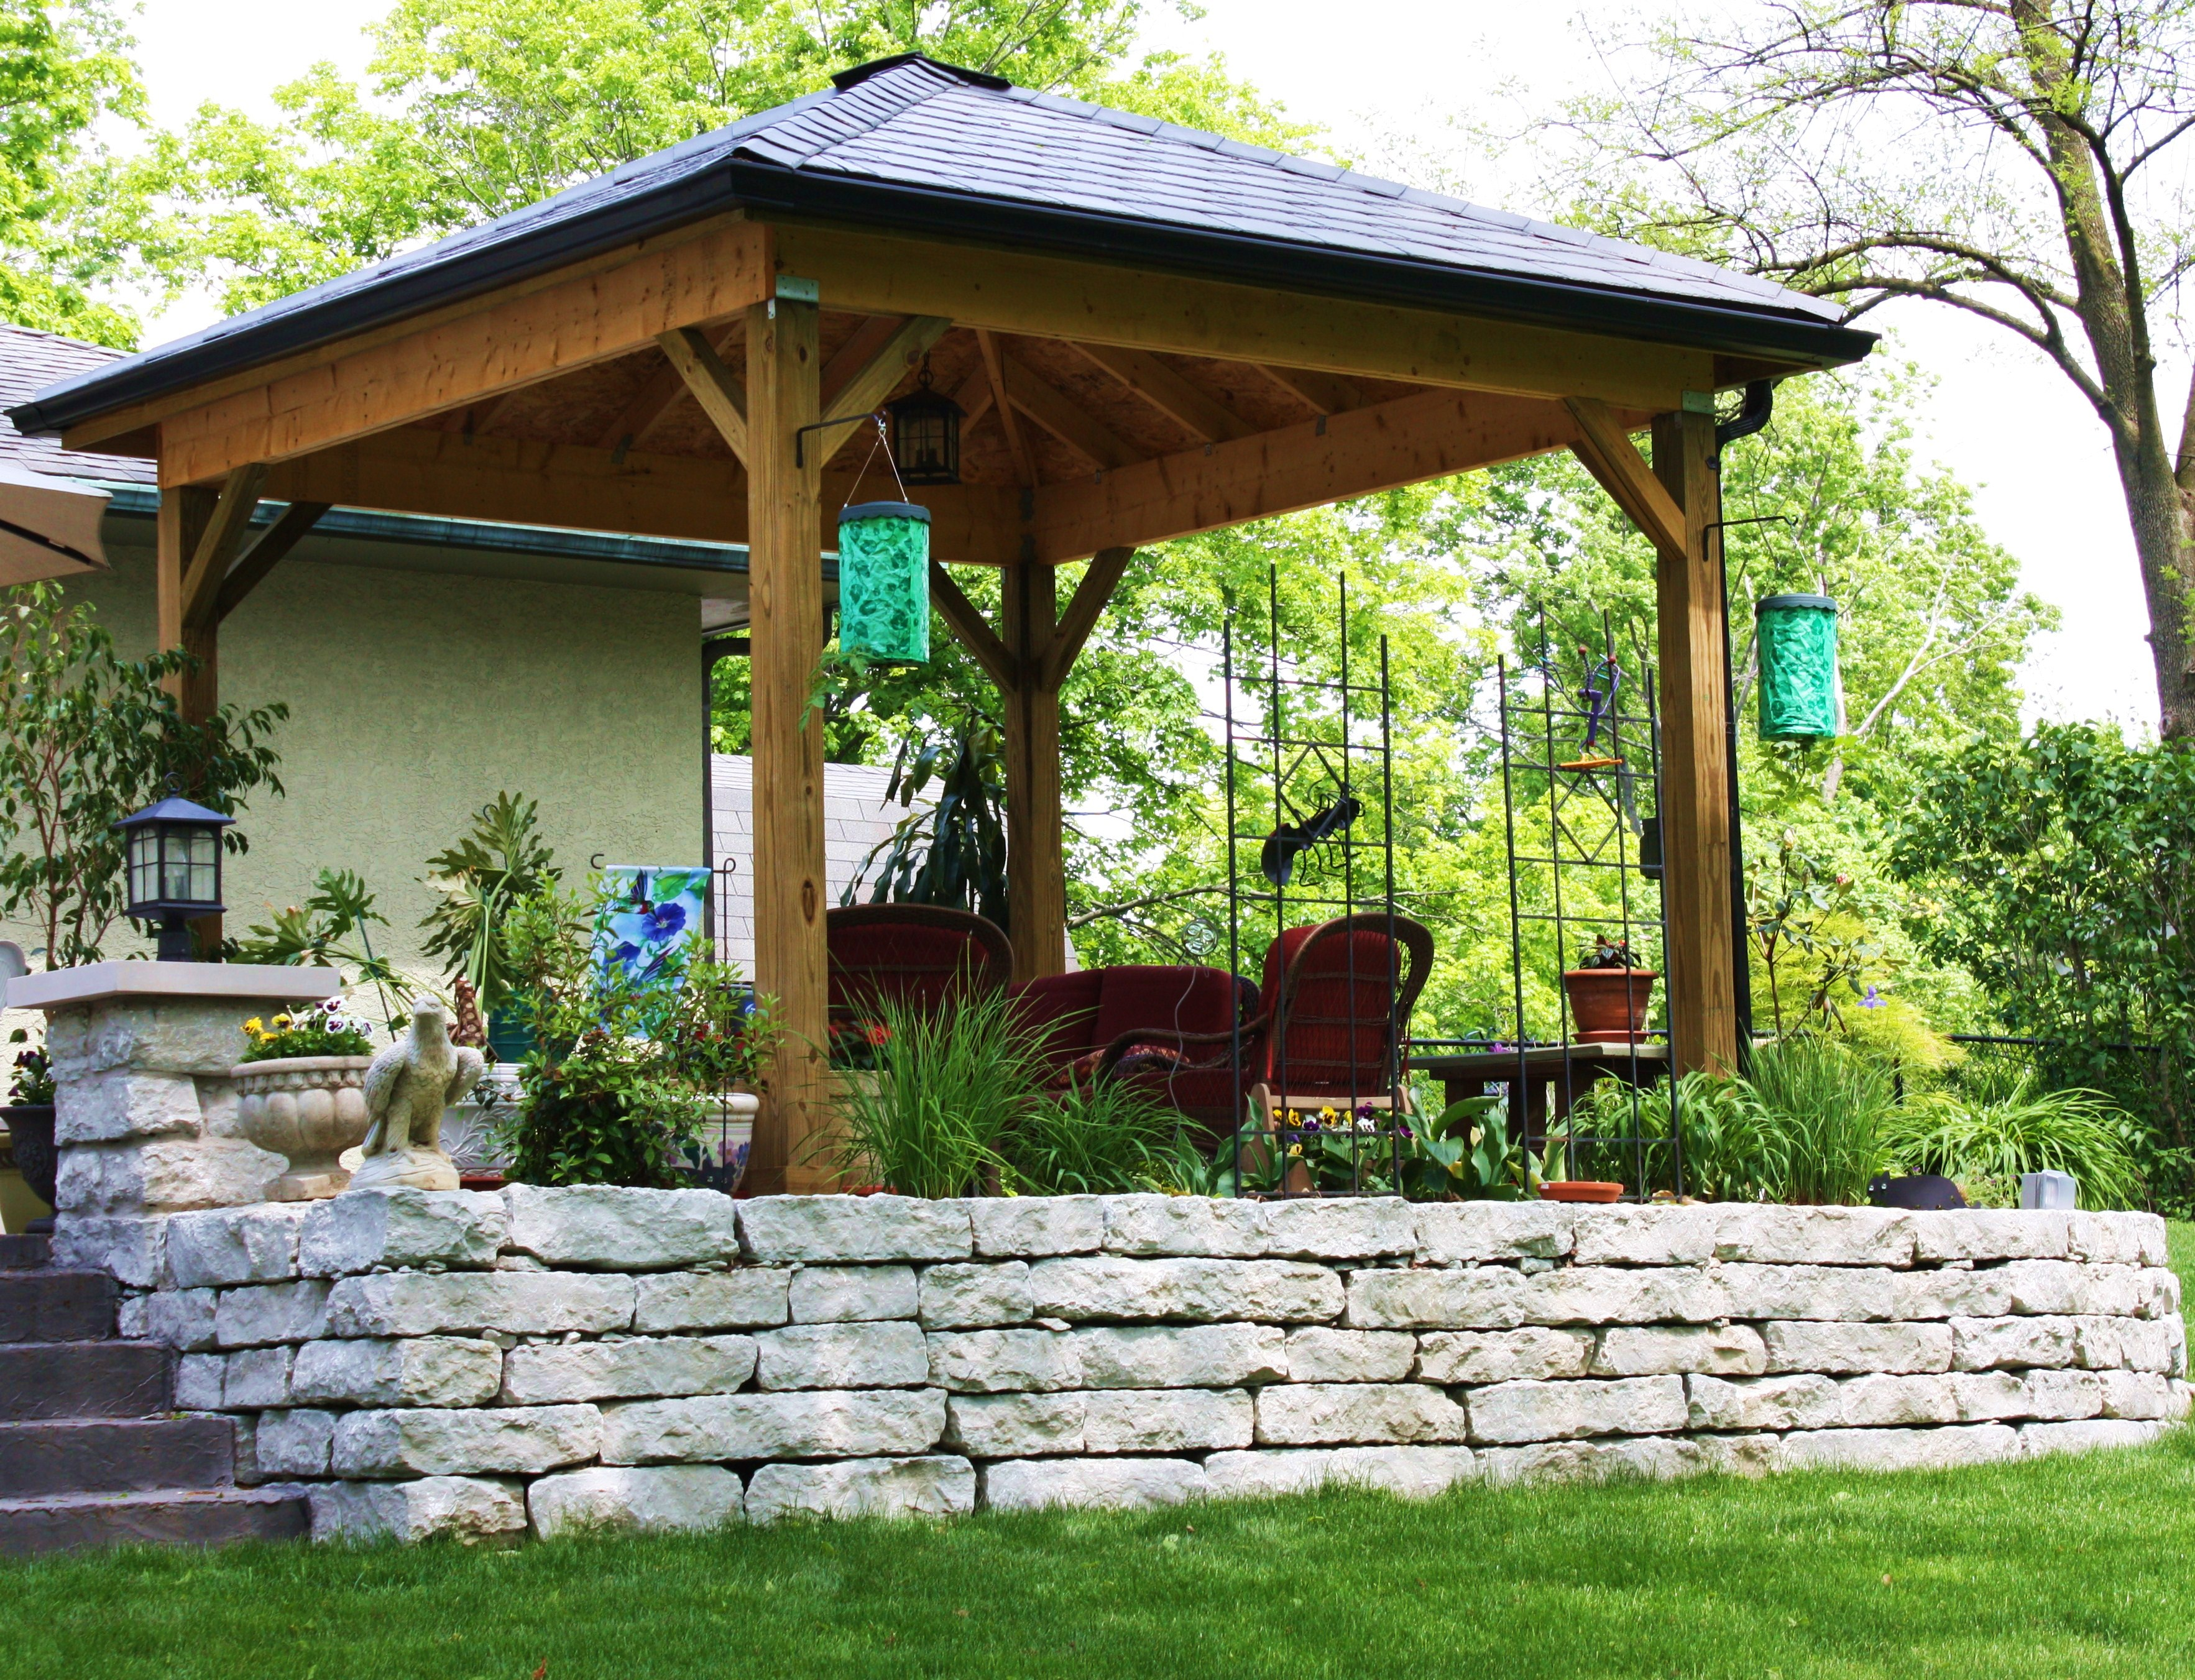 Outdoor Living Space with Retaining Wall